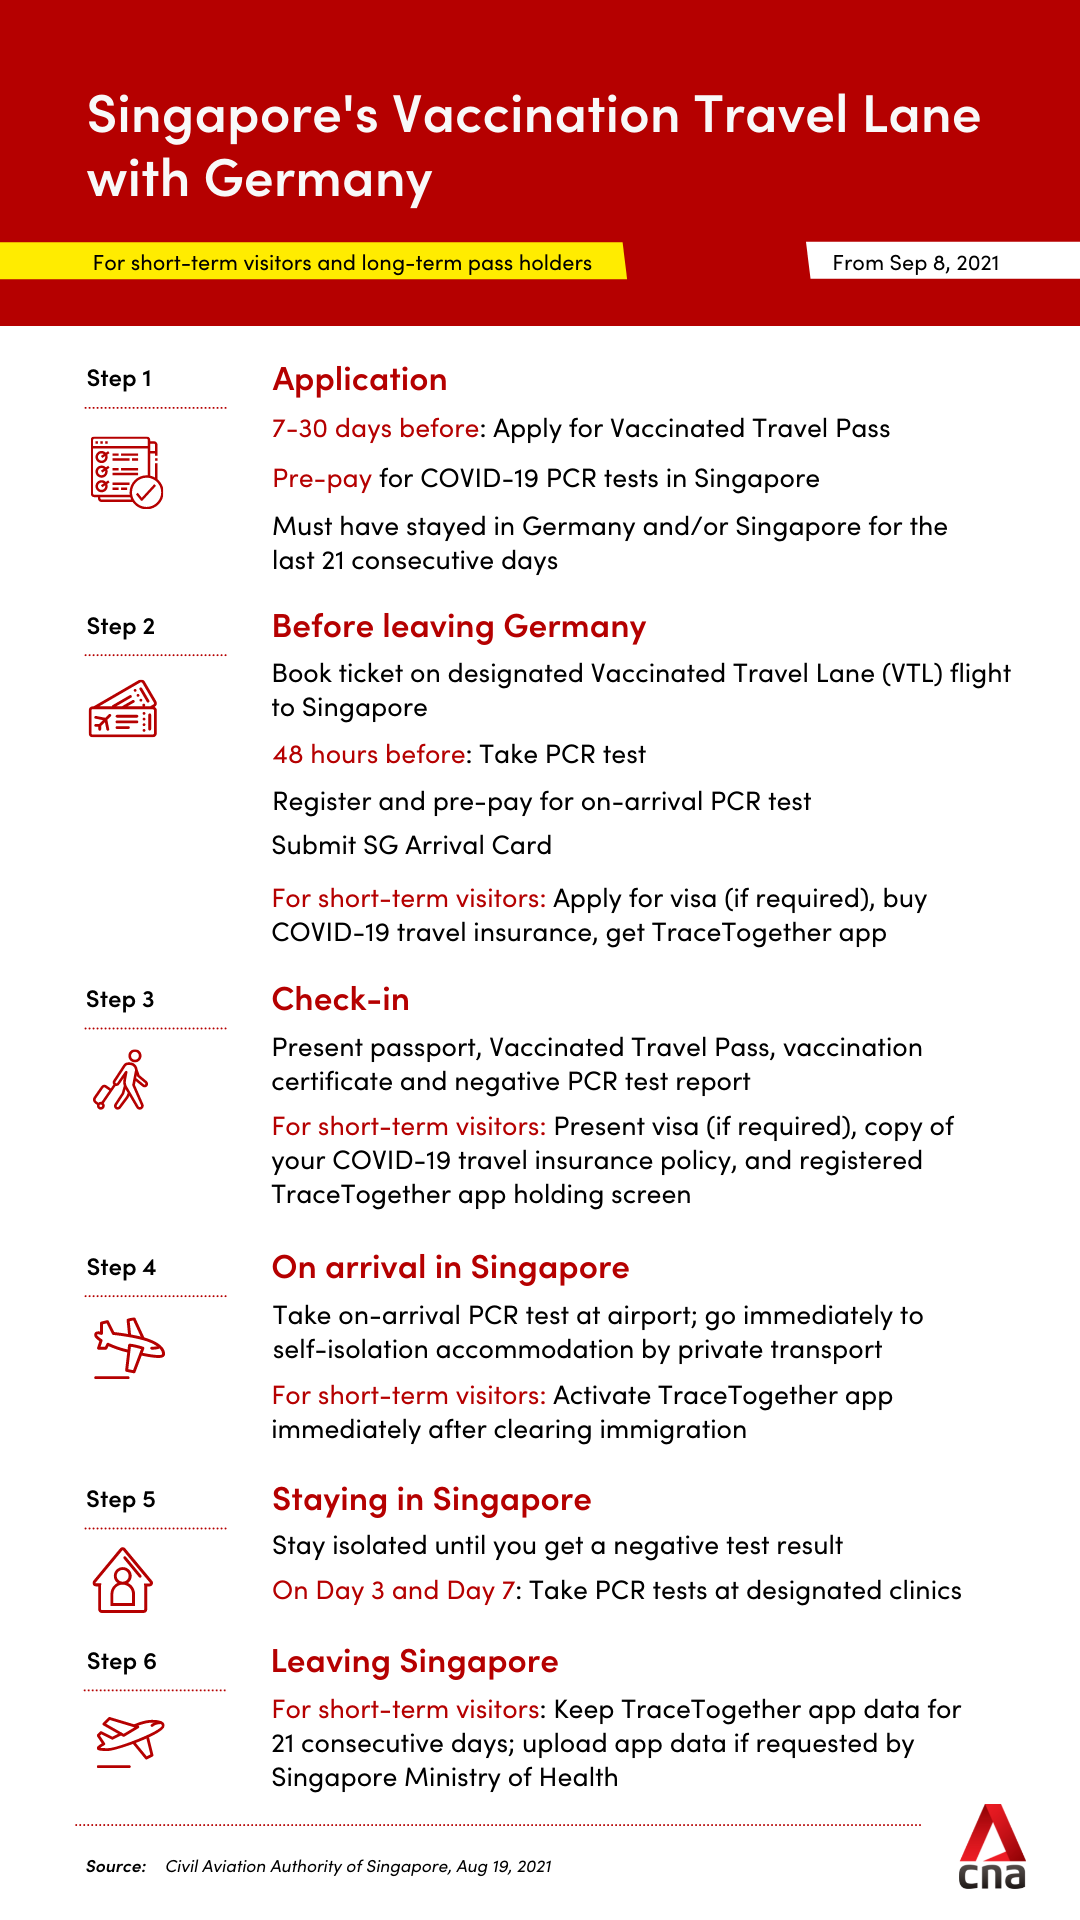 singapore vtl with germany - short term visitors, long term pass holders